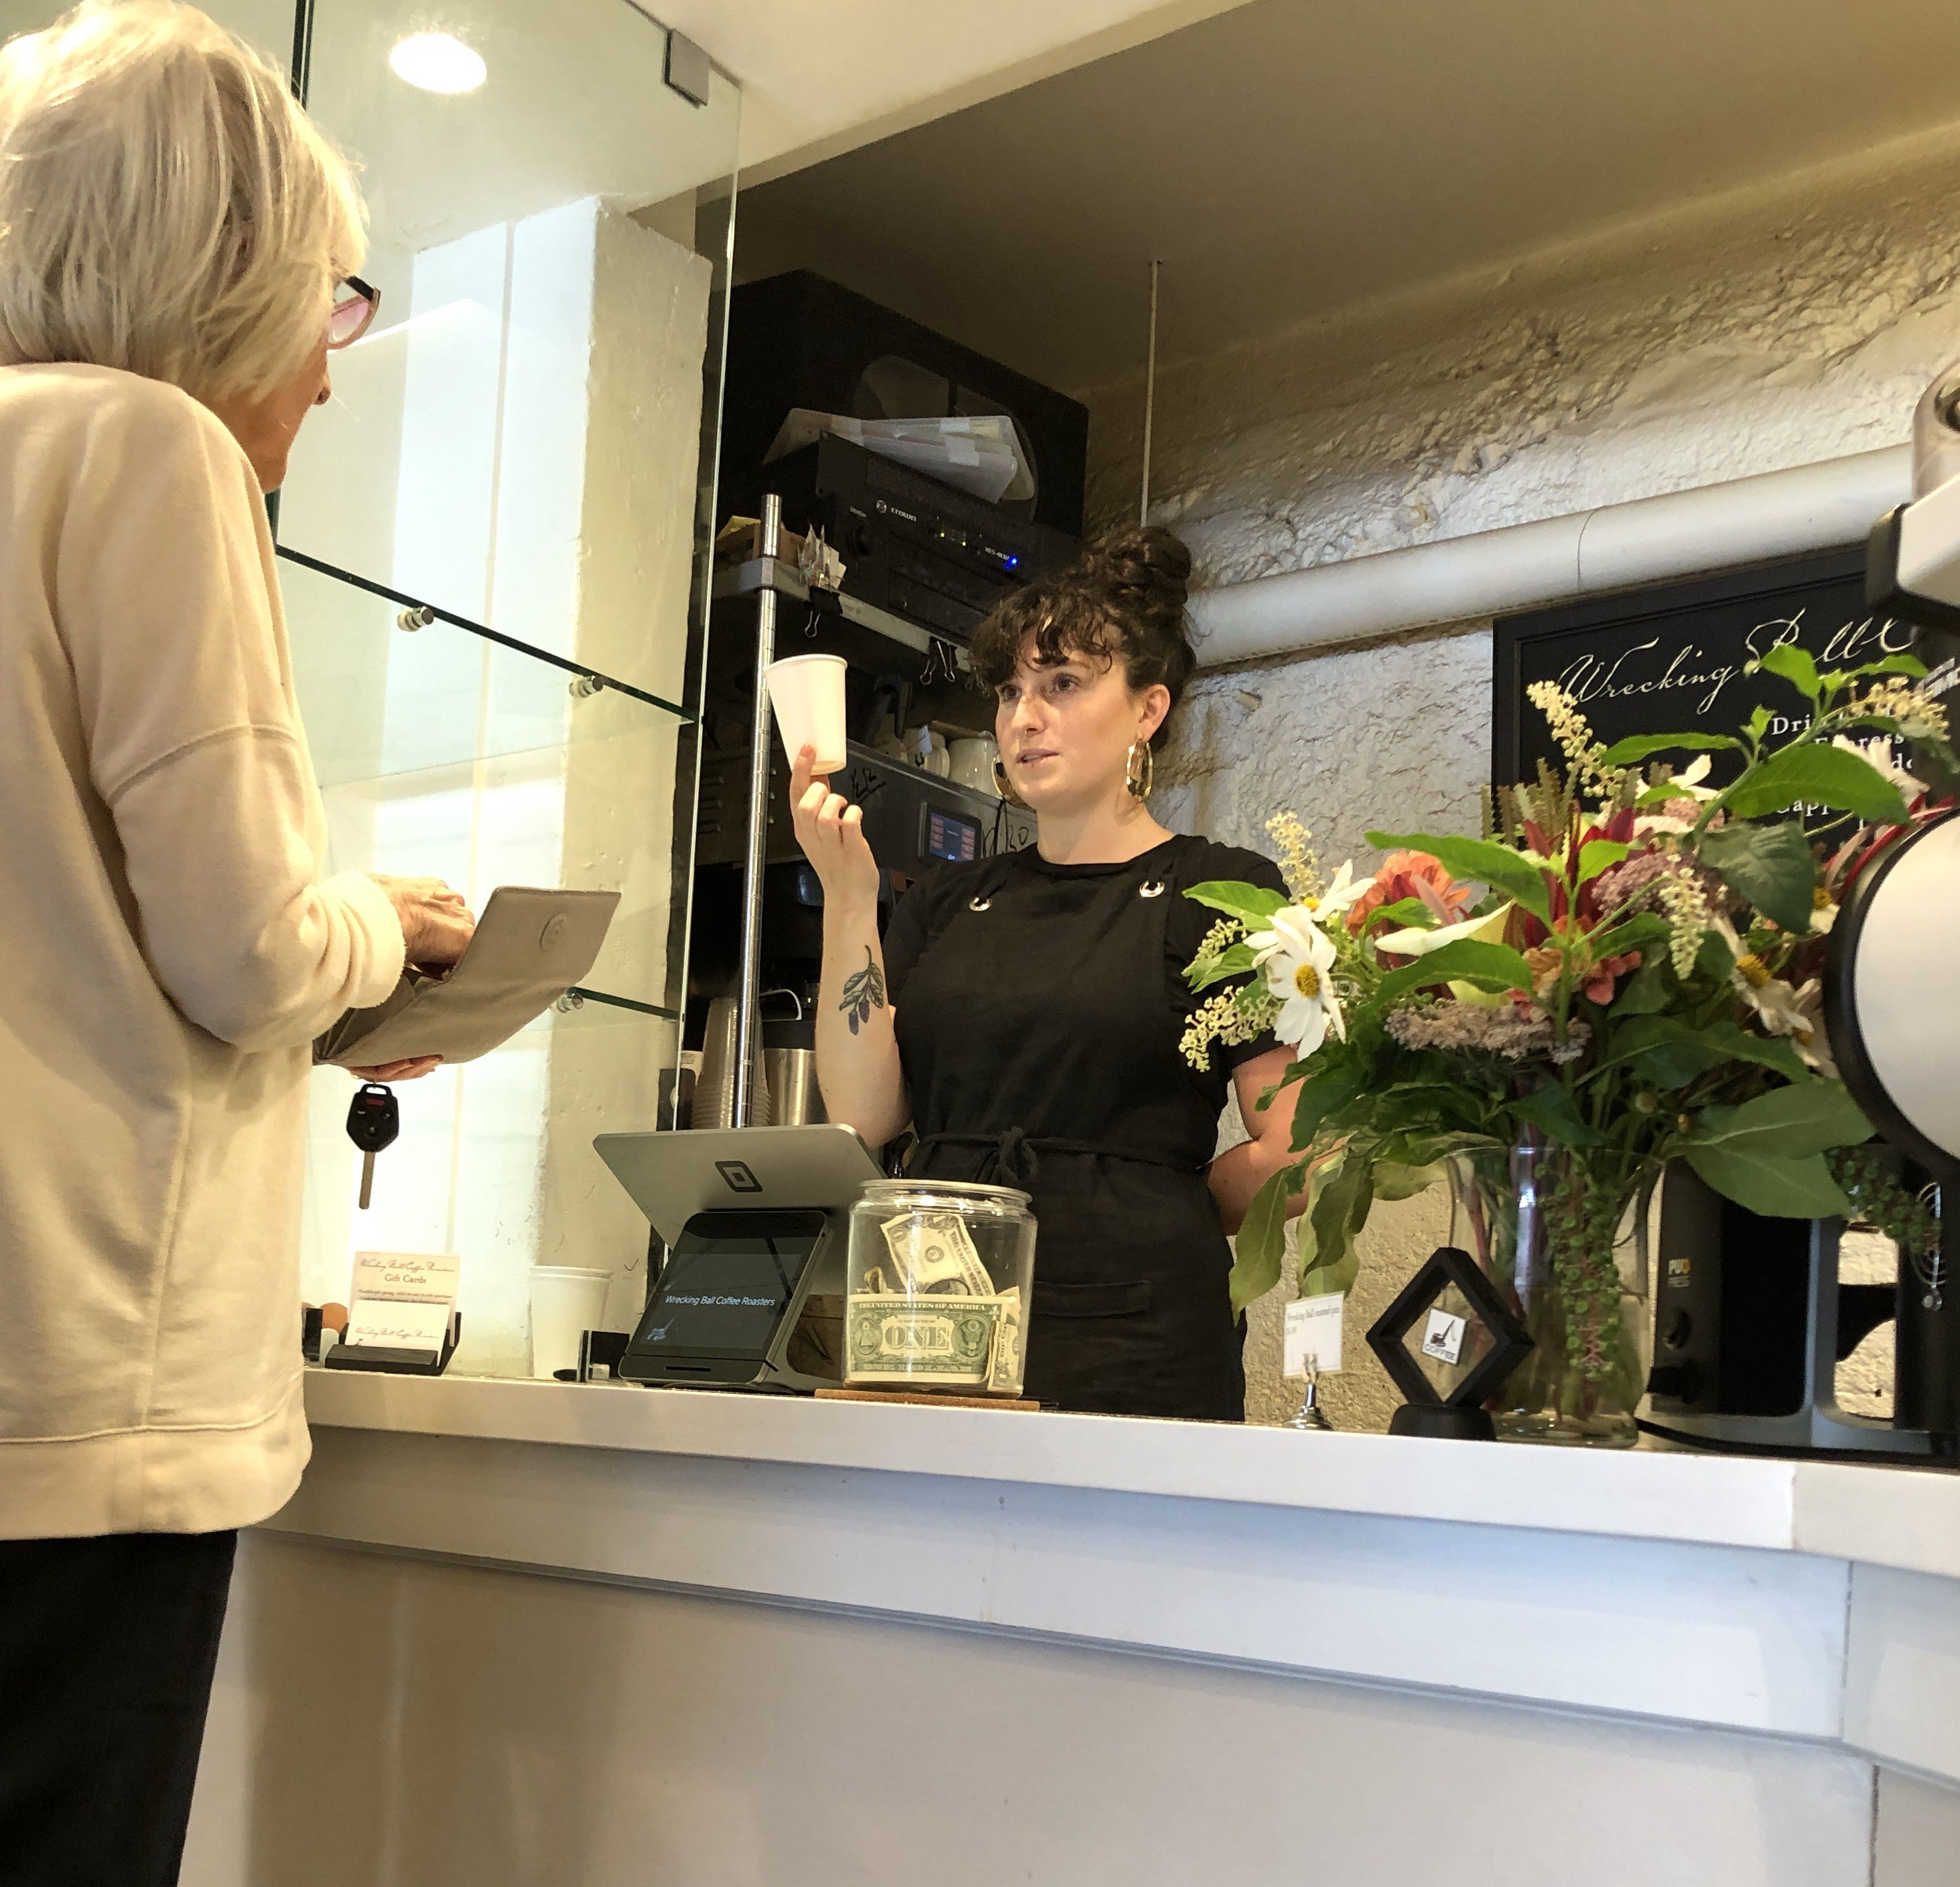 A young woman behind a cash register is holding up a cup for a woman to see.